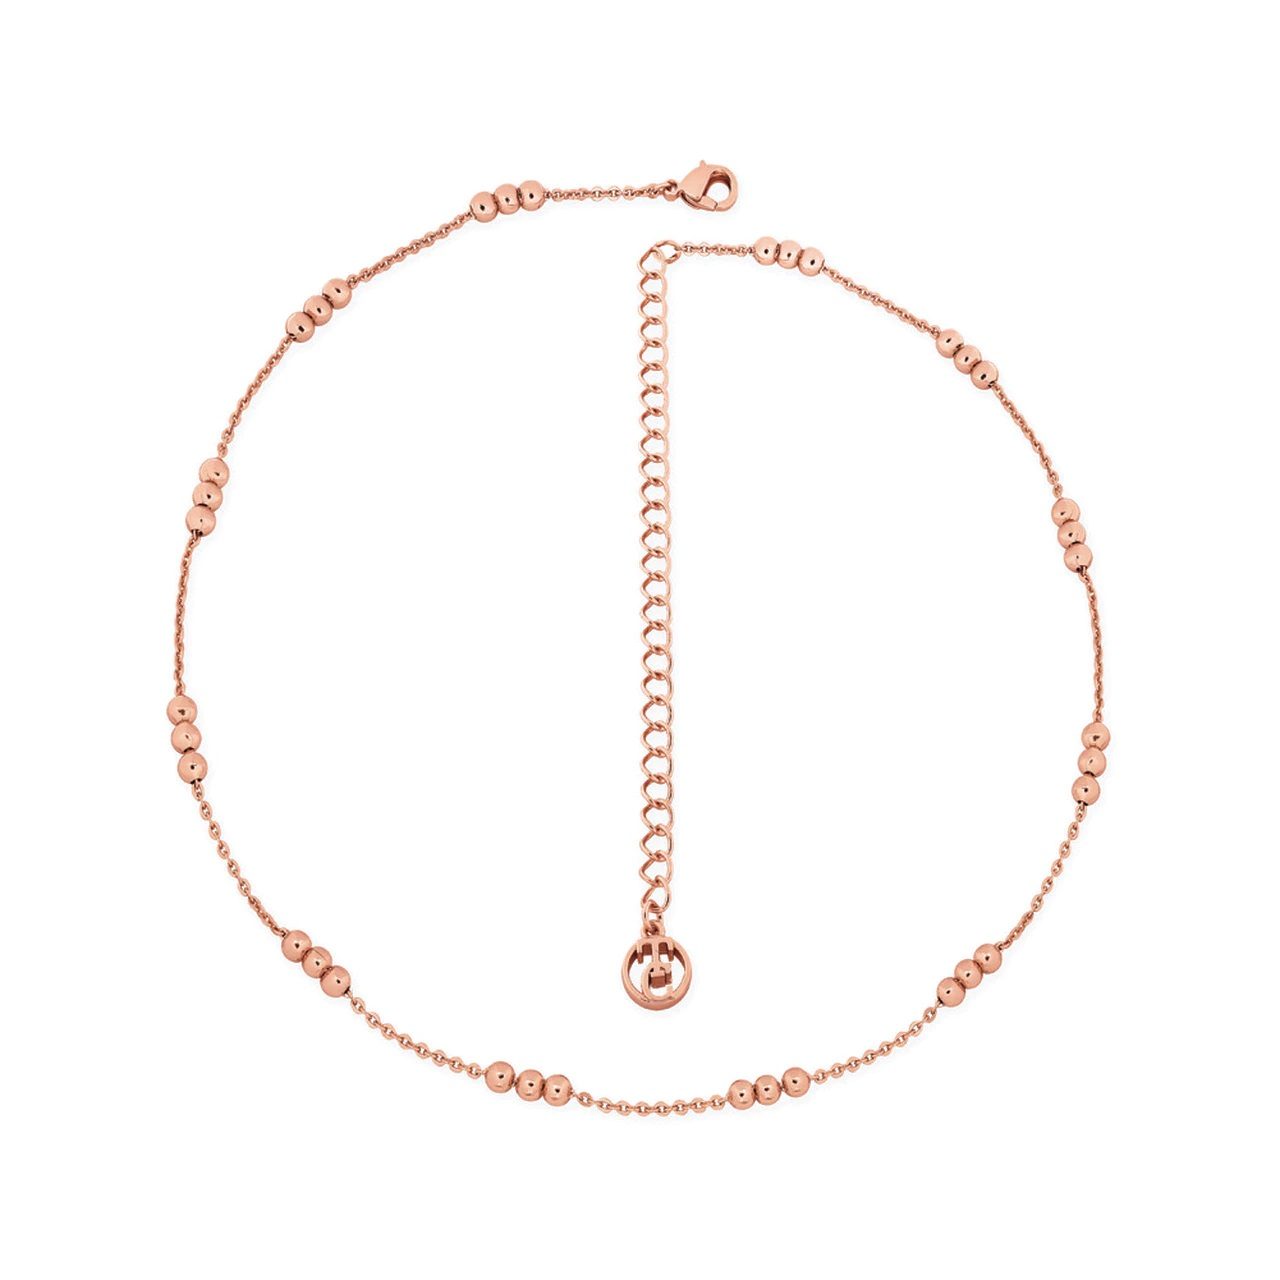 Skandi Triple Bead Rose Gold Choker Necklace From Tipperary Crystal